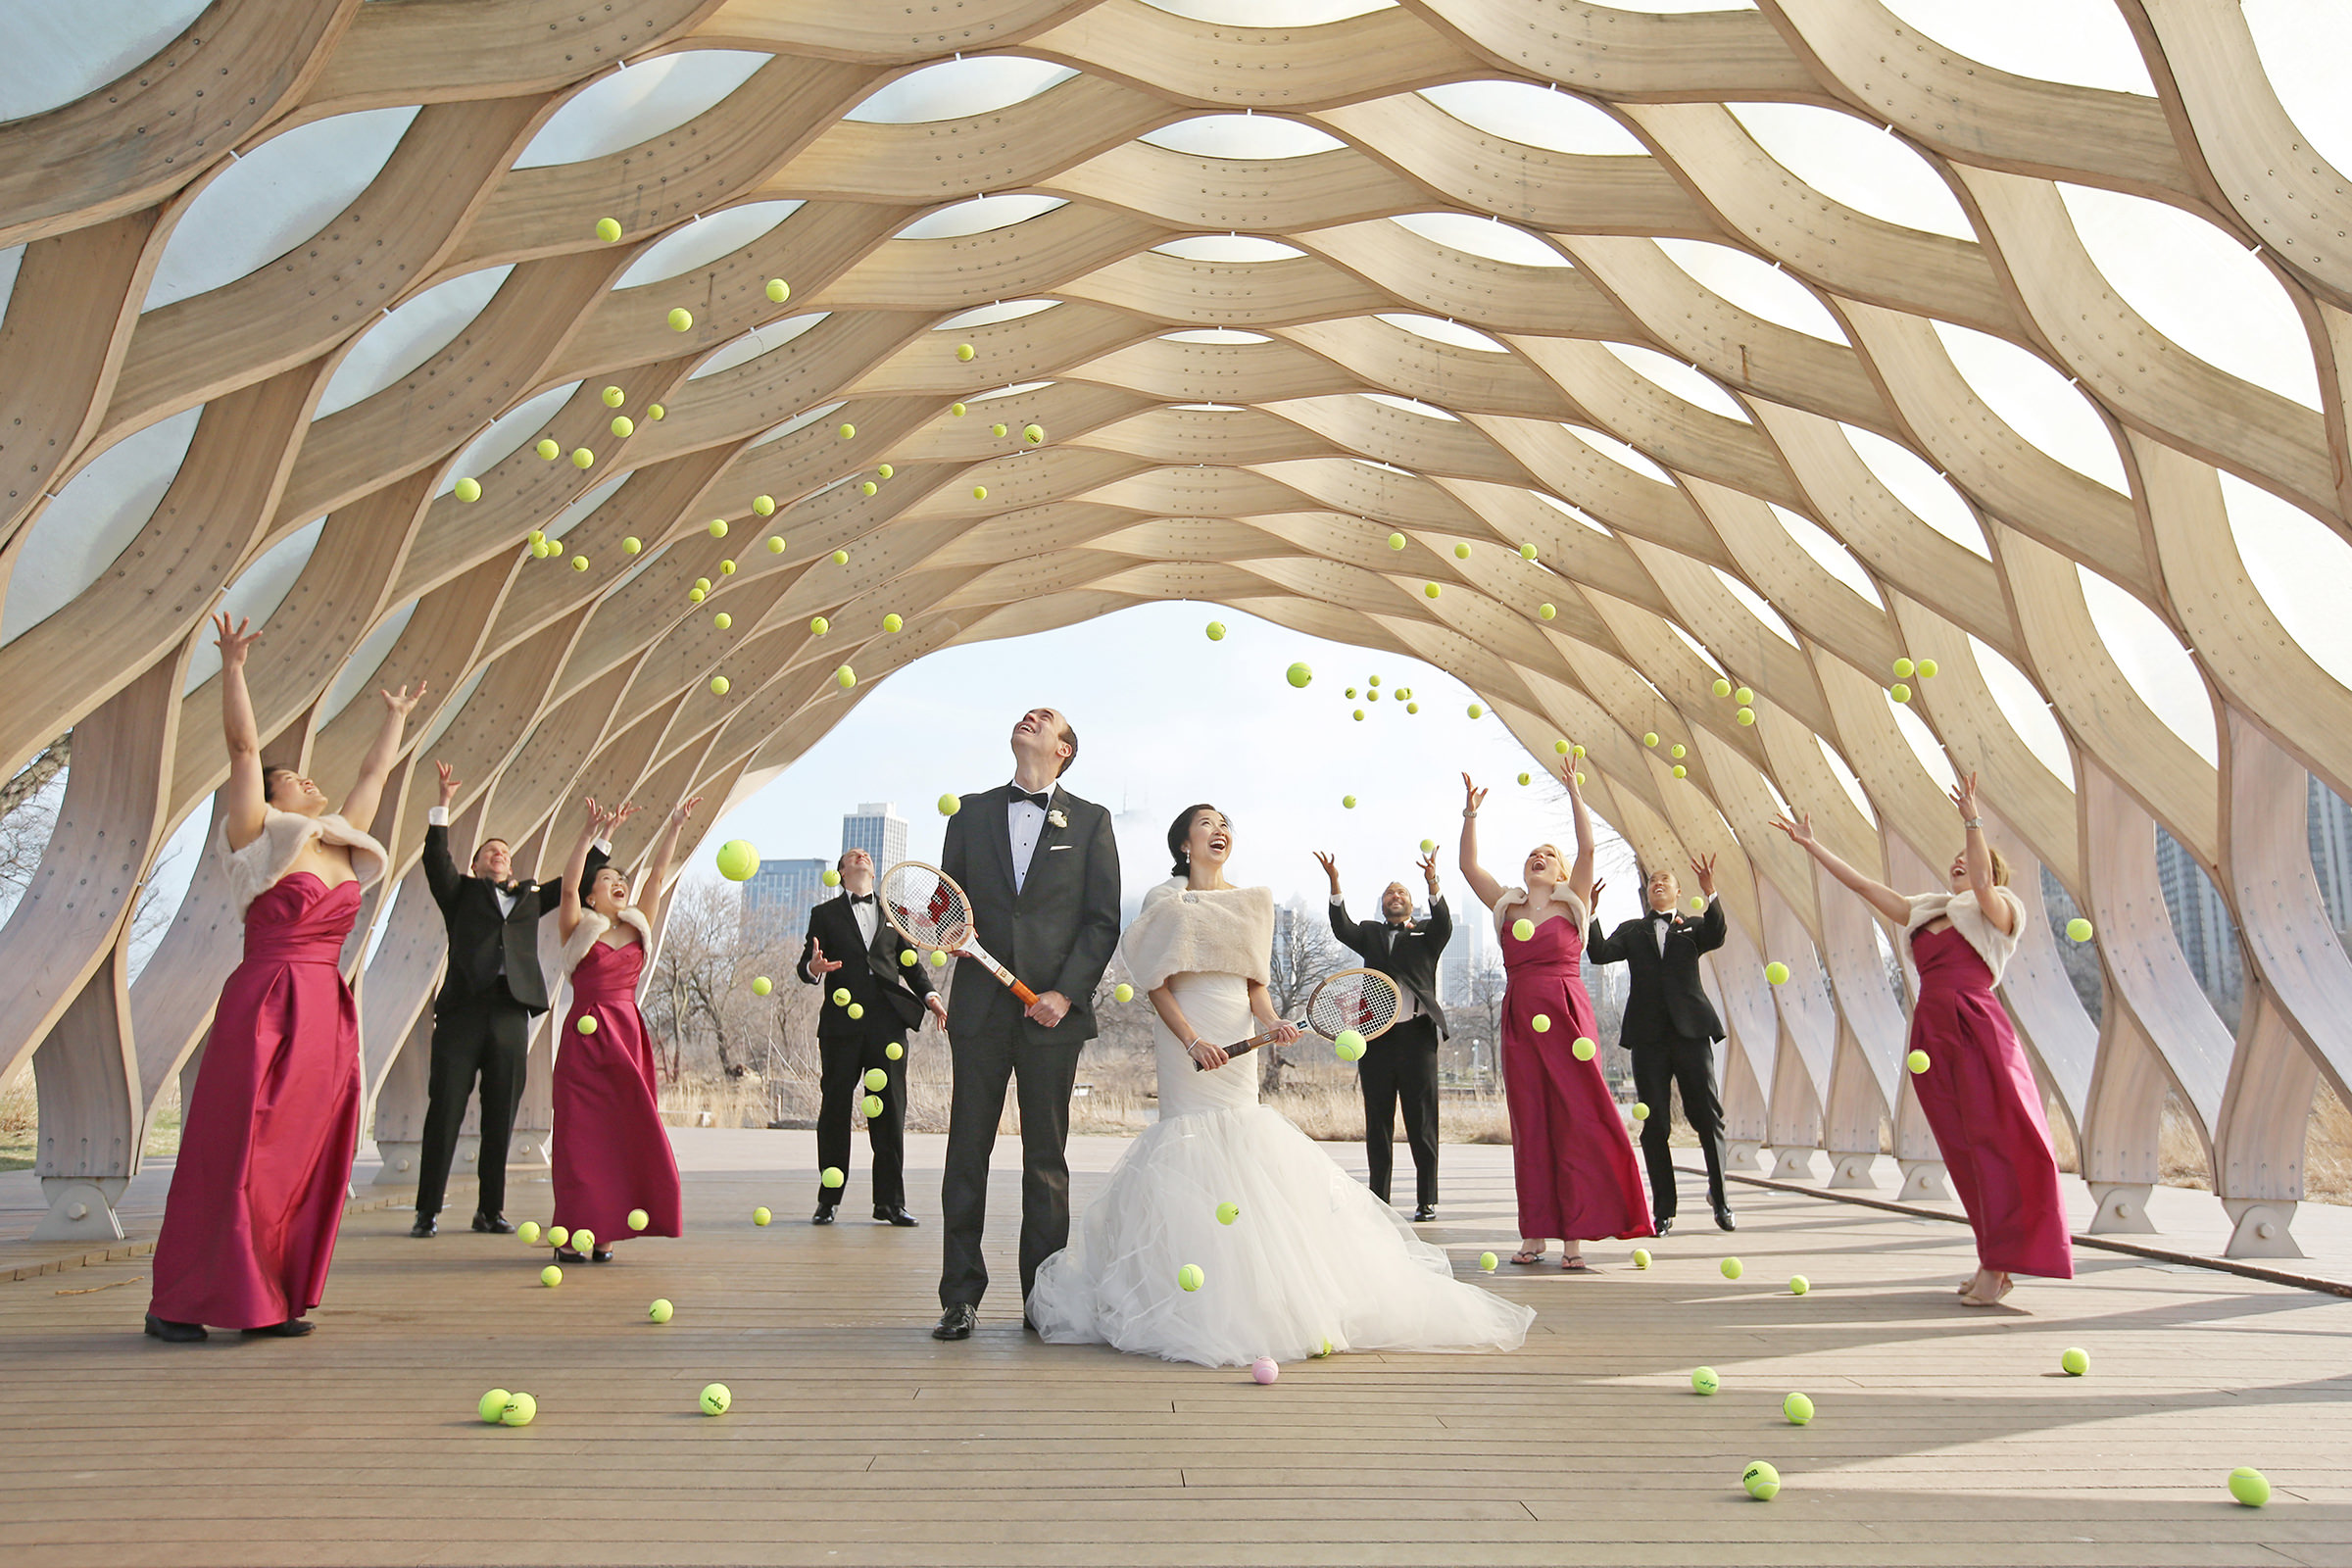 Couple and bridal party showered with tennis balls - photo by Kenny Kim Photography